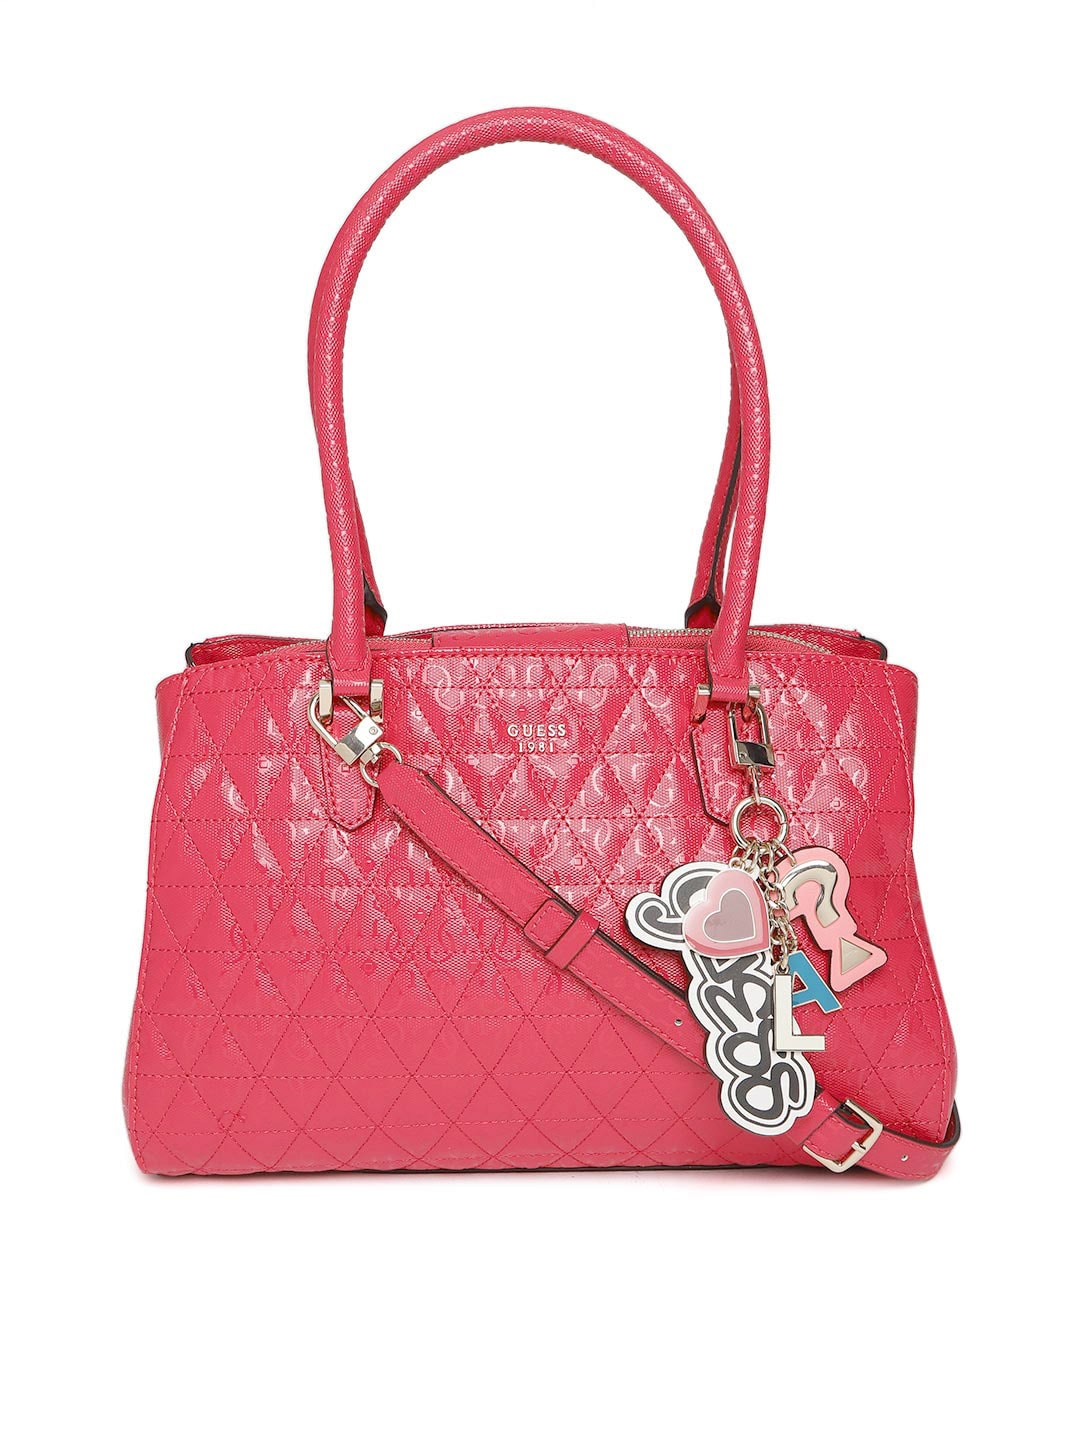 Guess Handbags - Buy Guess Handbags online in India 8185800d1a31e